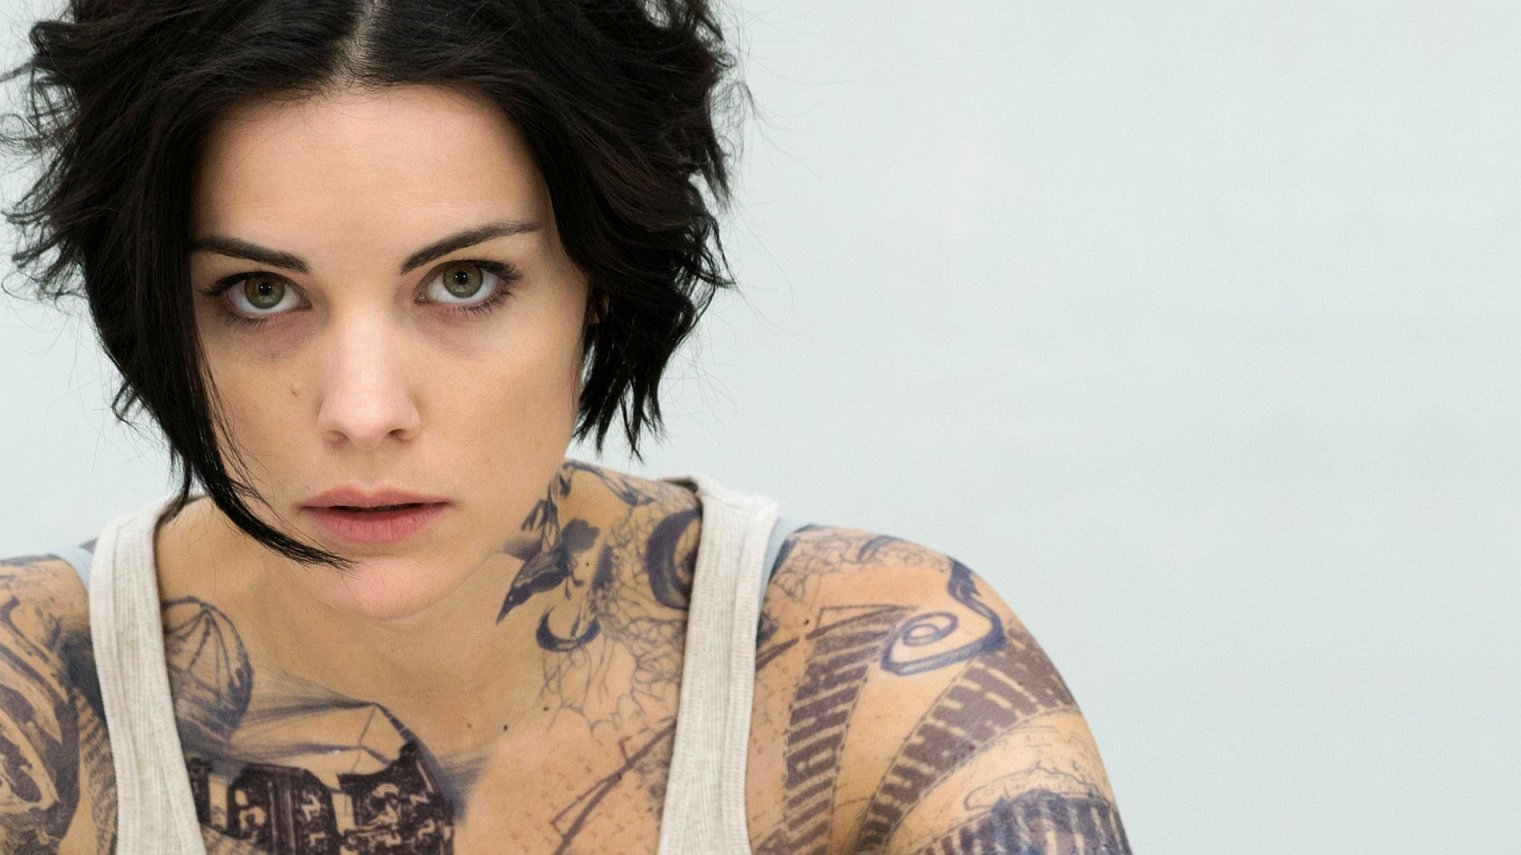 Blindspot season 3 episode 1 watch online